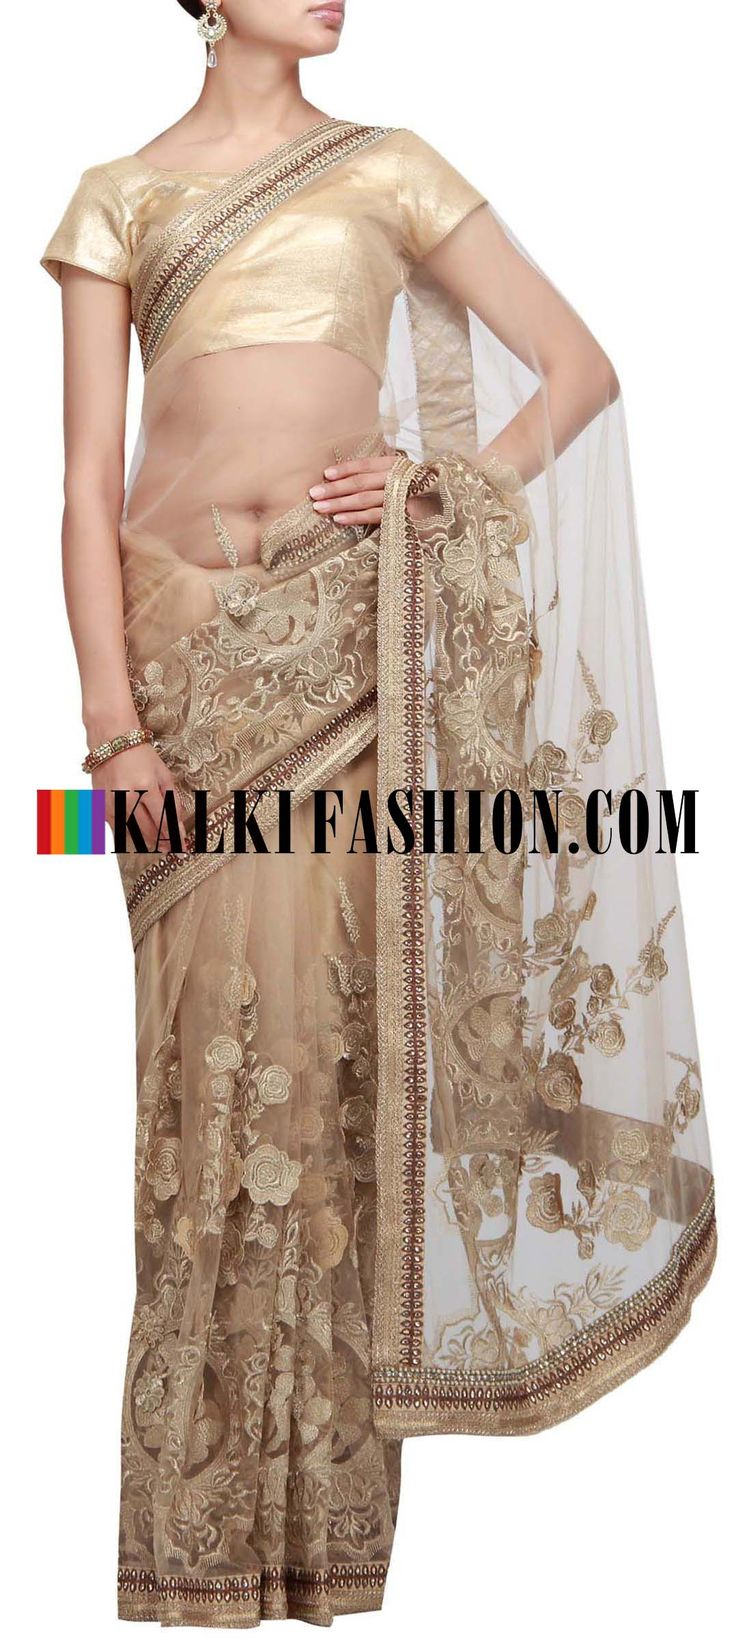 Get this beautiful golden saree here: http://www.kalkifashion.com/gold-saree-embroidered-in-zari-cut-work.html Free shipping worldwide. #50ShadesOfGold